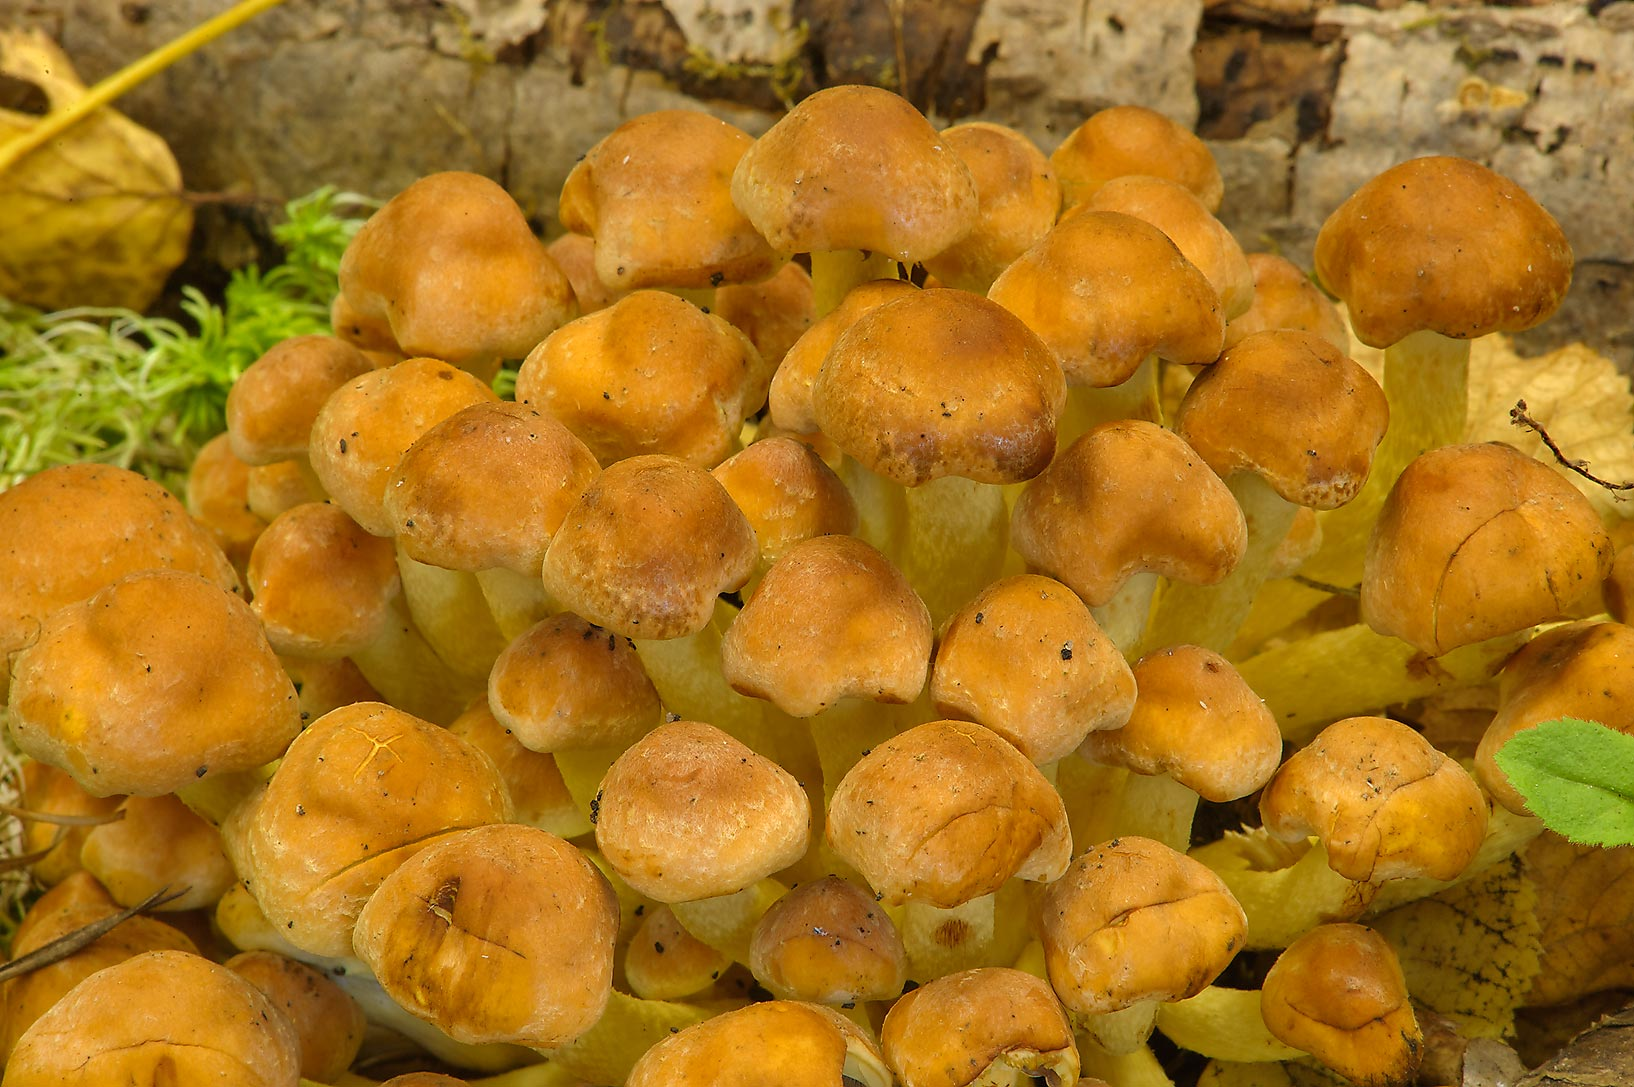 Sulphur Tuft (Hypholoma sp.) mushrooms on display...Institute. St.Petersburg, Russia